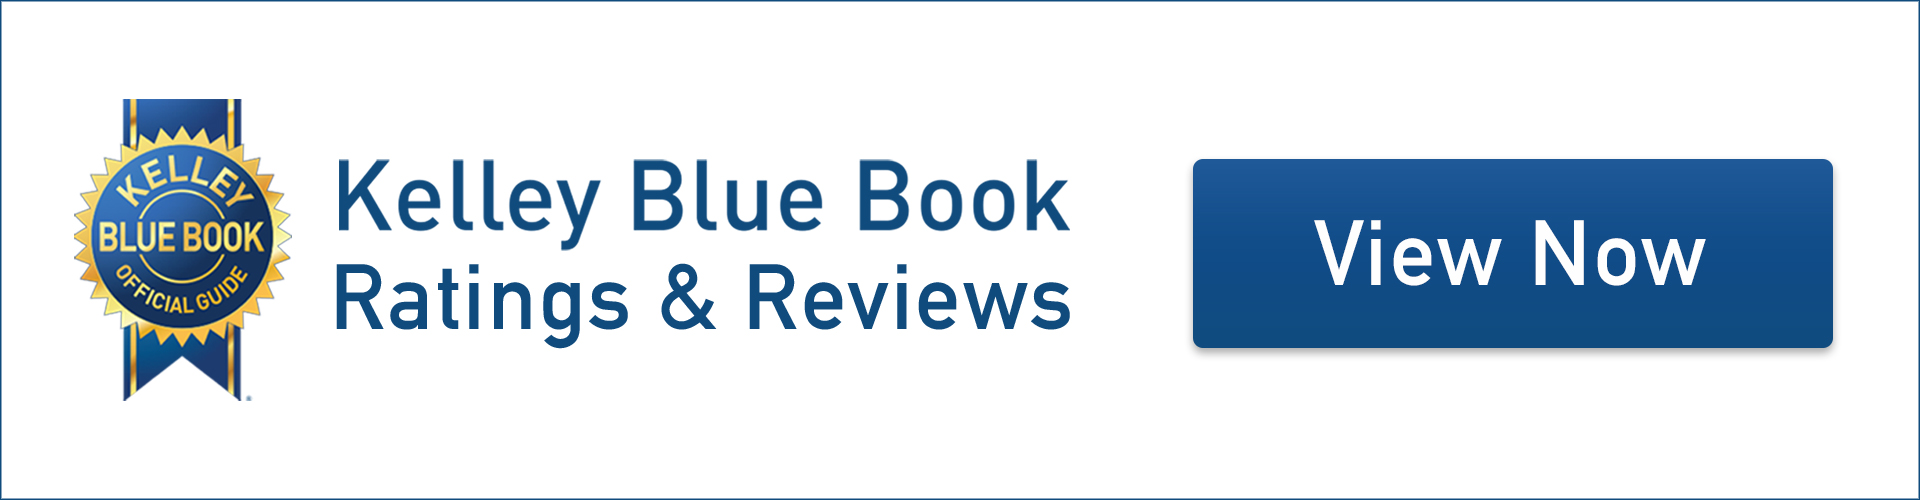 KBB Ratings & Reviews